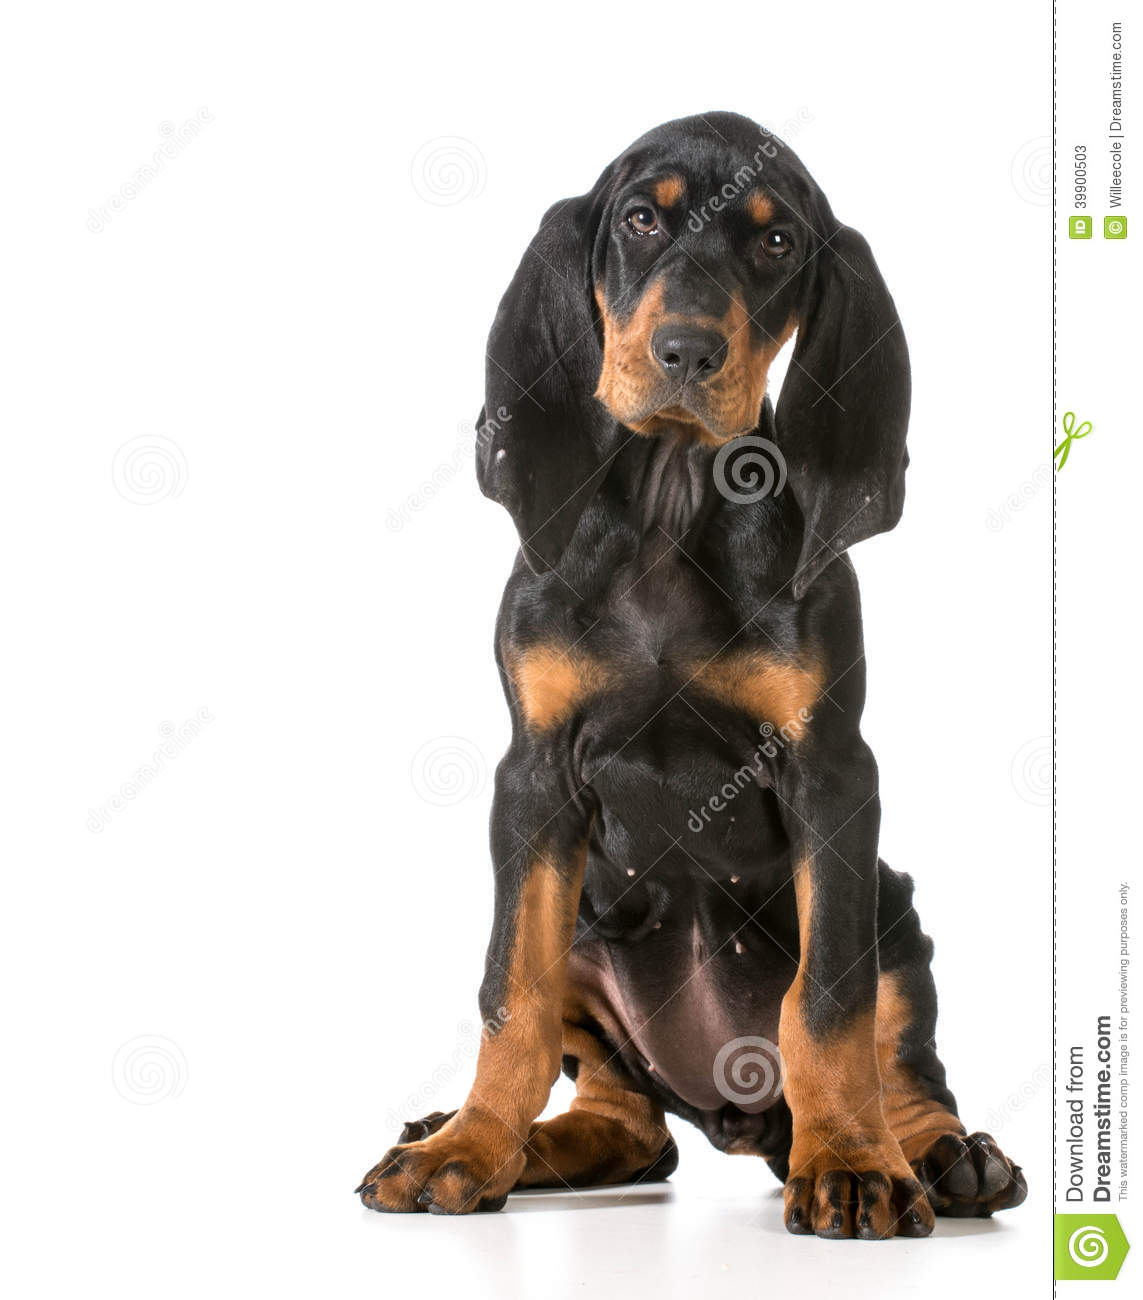 Black And Tan Coonhound Stock Photo - Image: 39900503